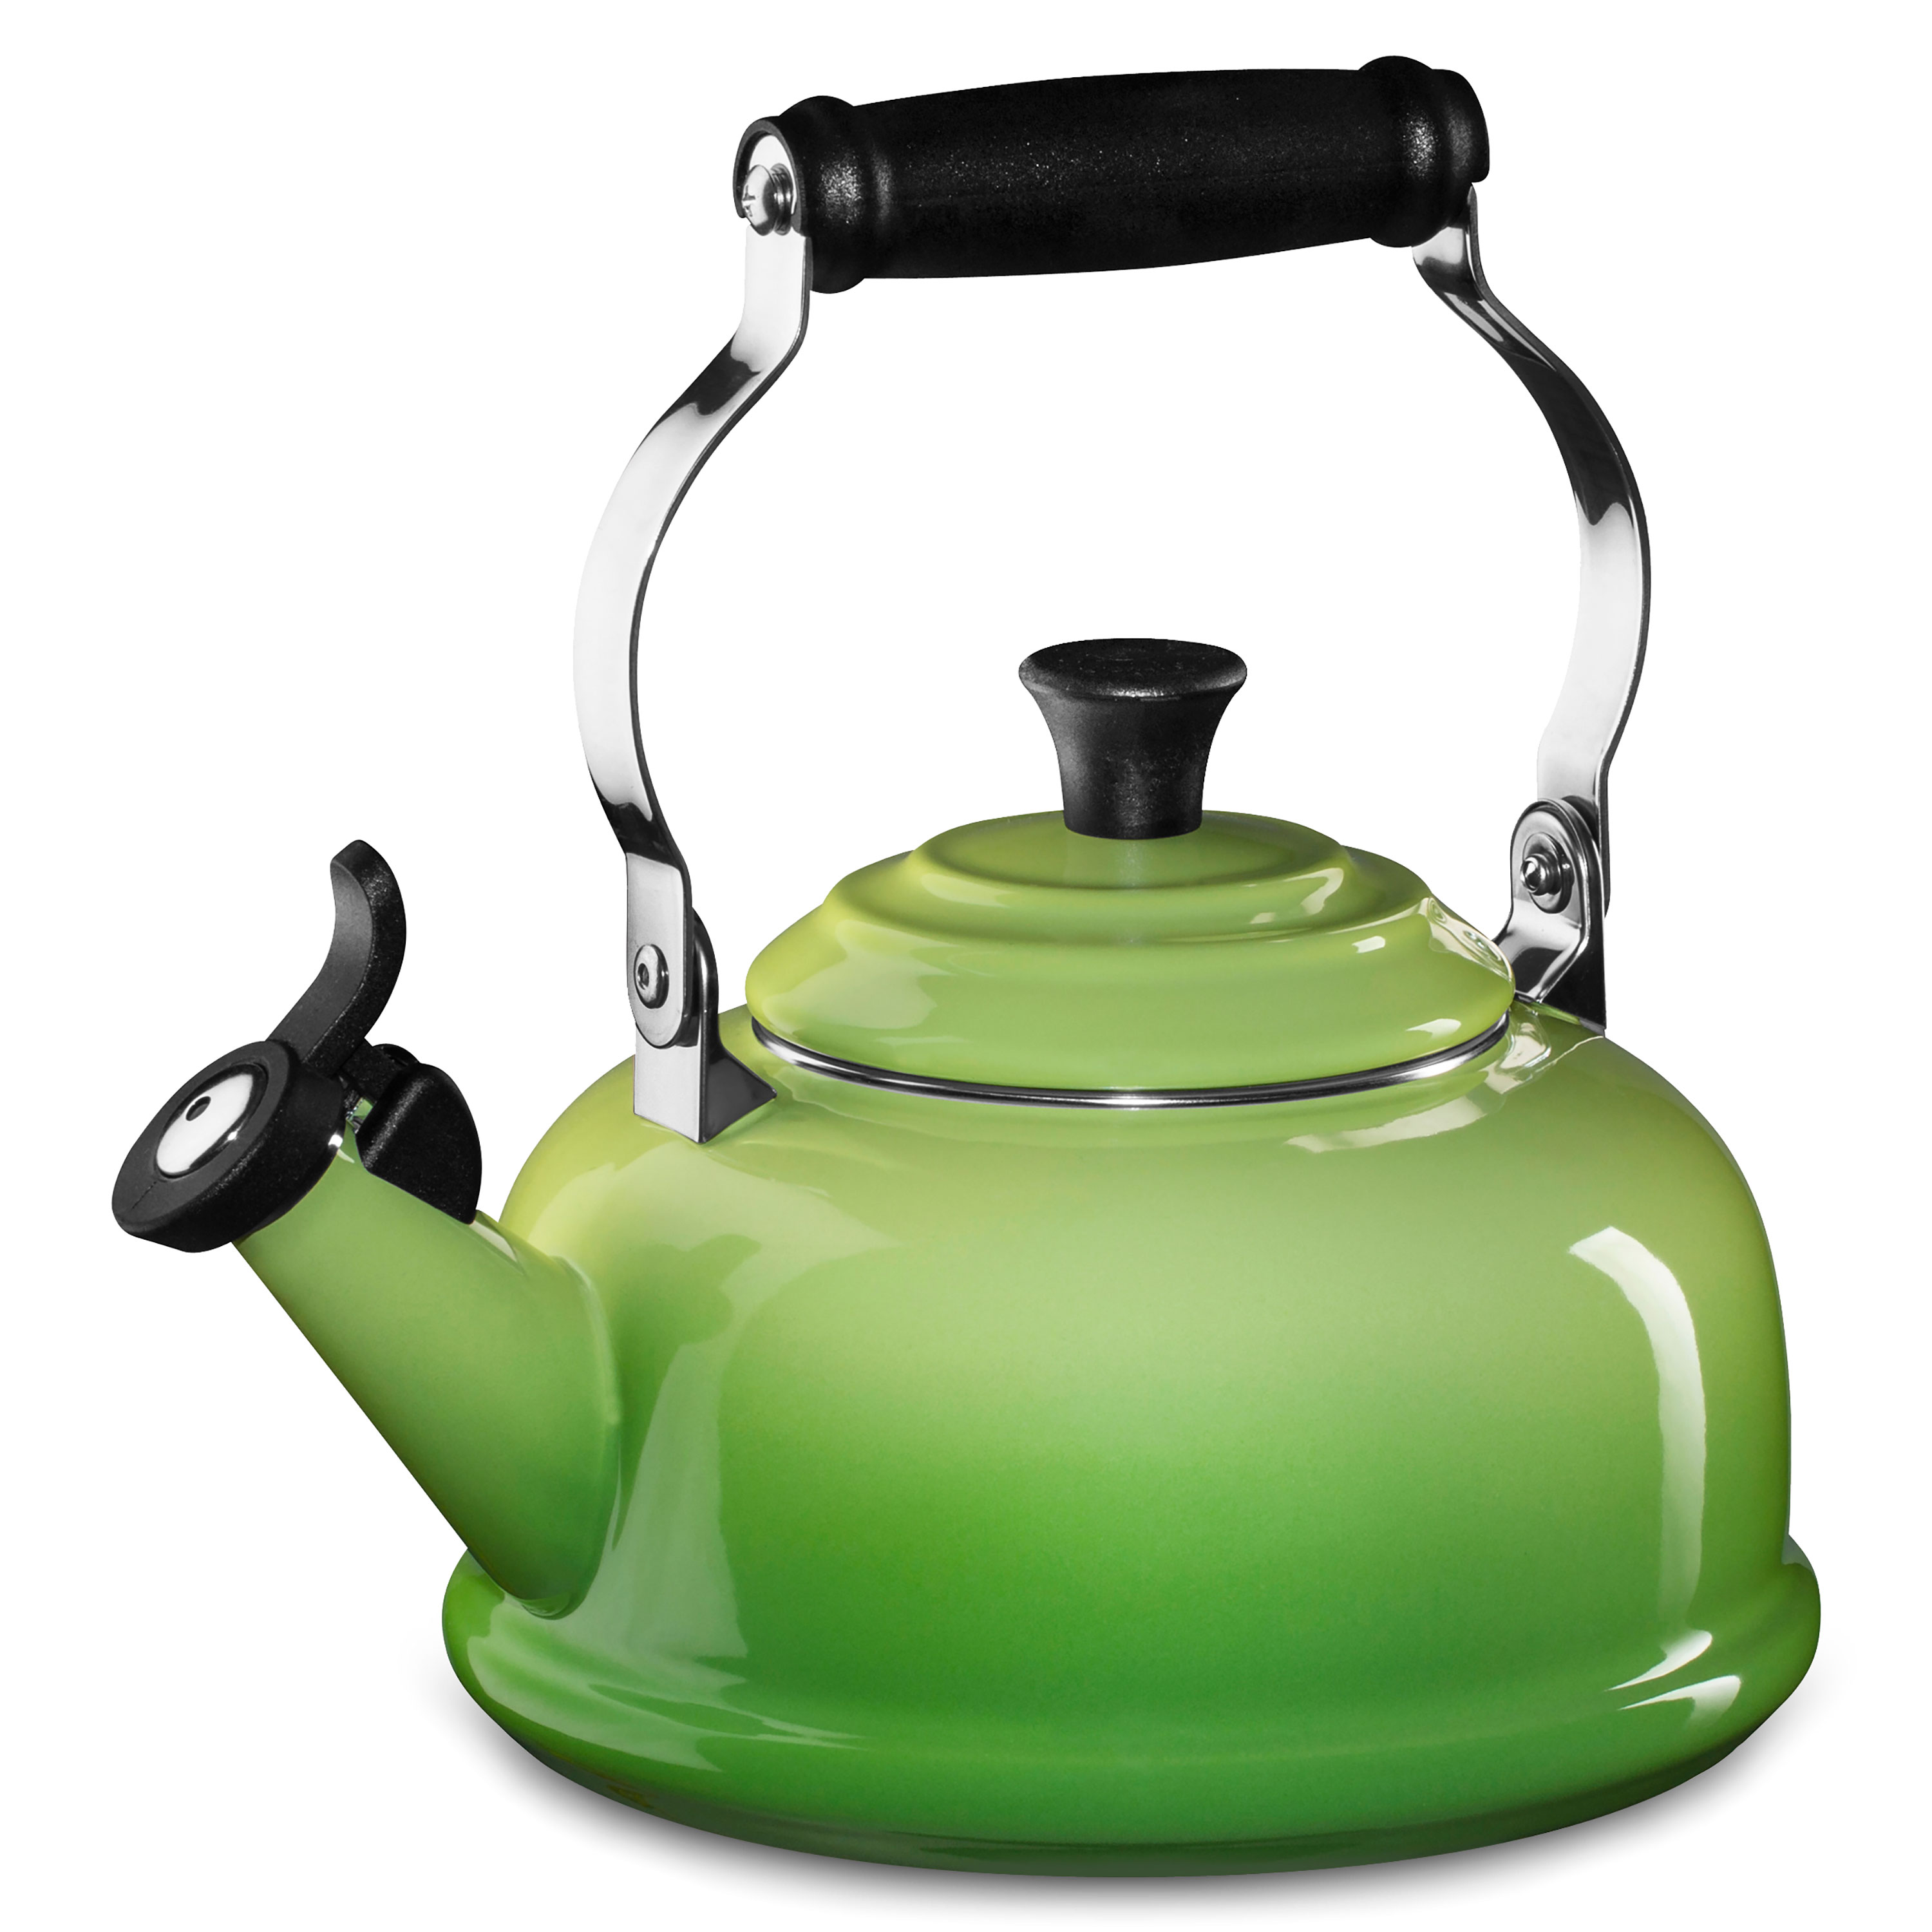 Le Creuset Enameled Steel Whistling Tea Kettle 18quart Palm  Cutlery and More